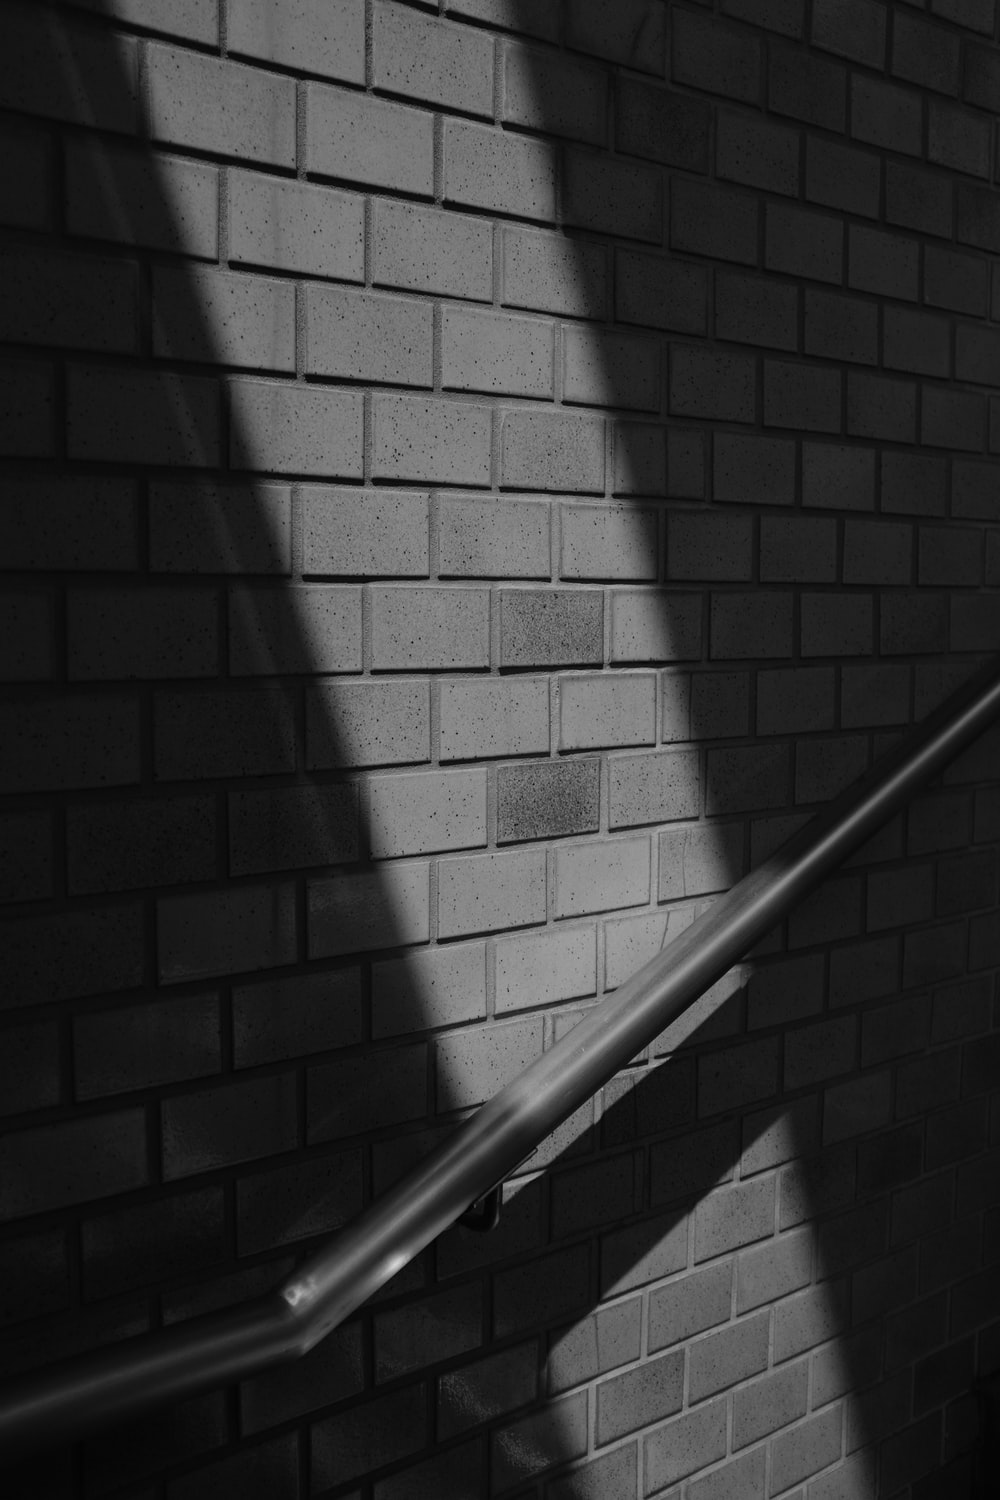 grayscale photo of stair rail